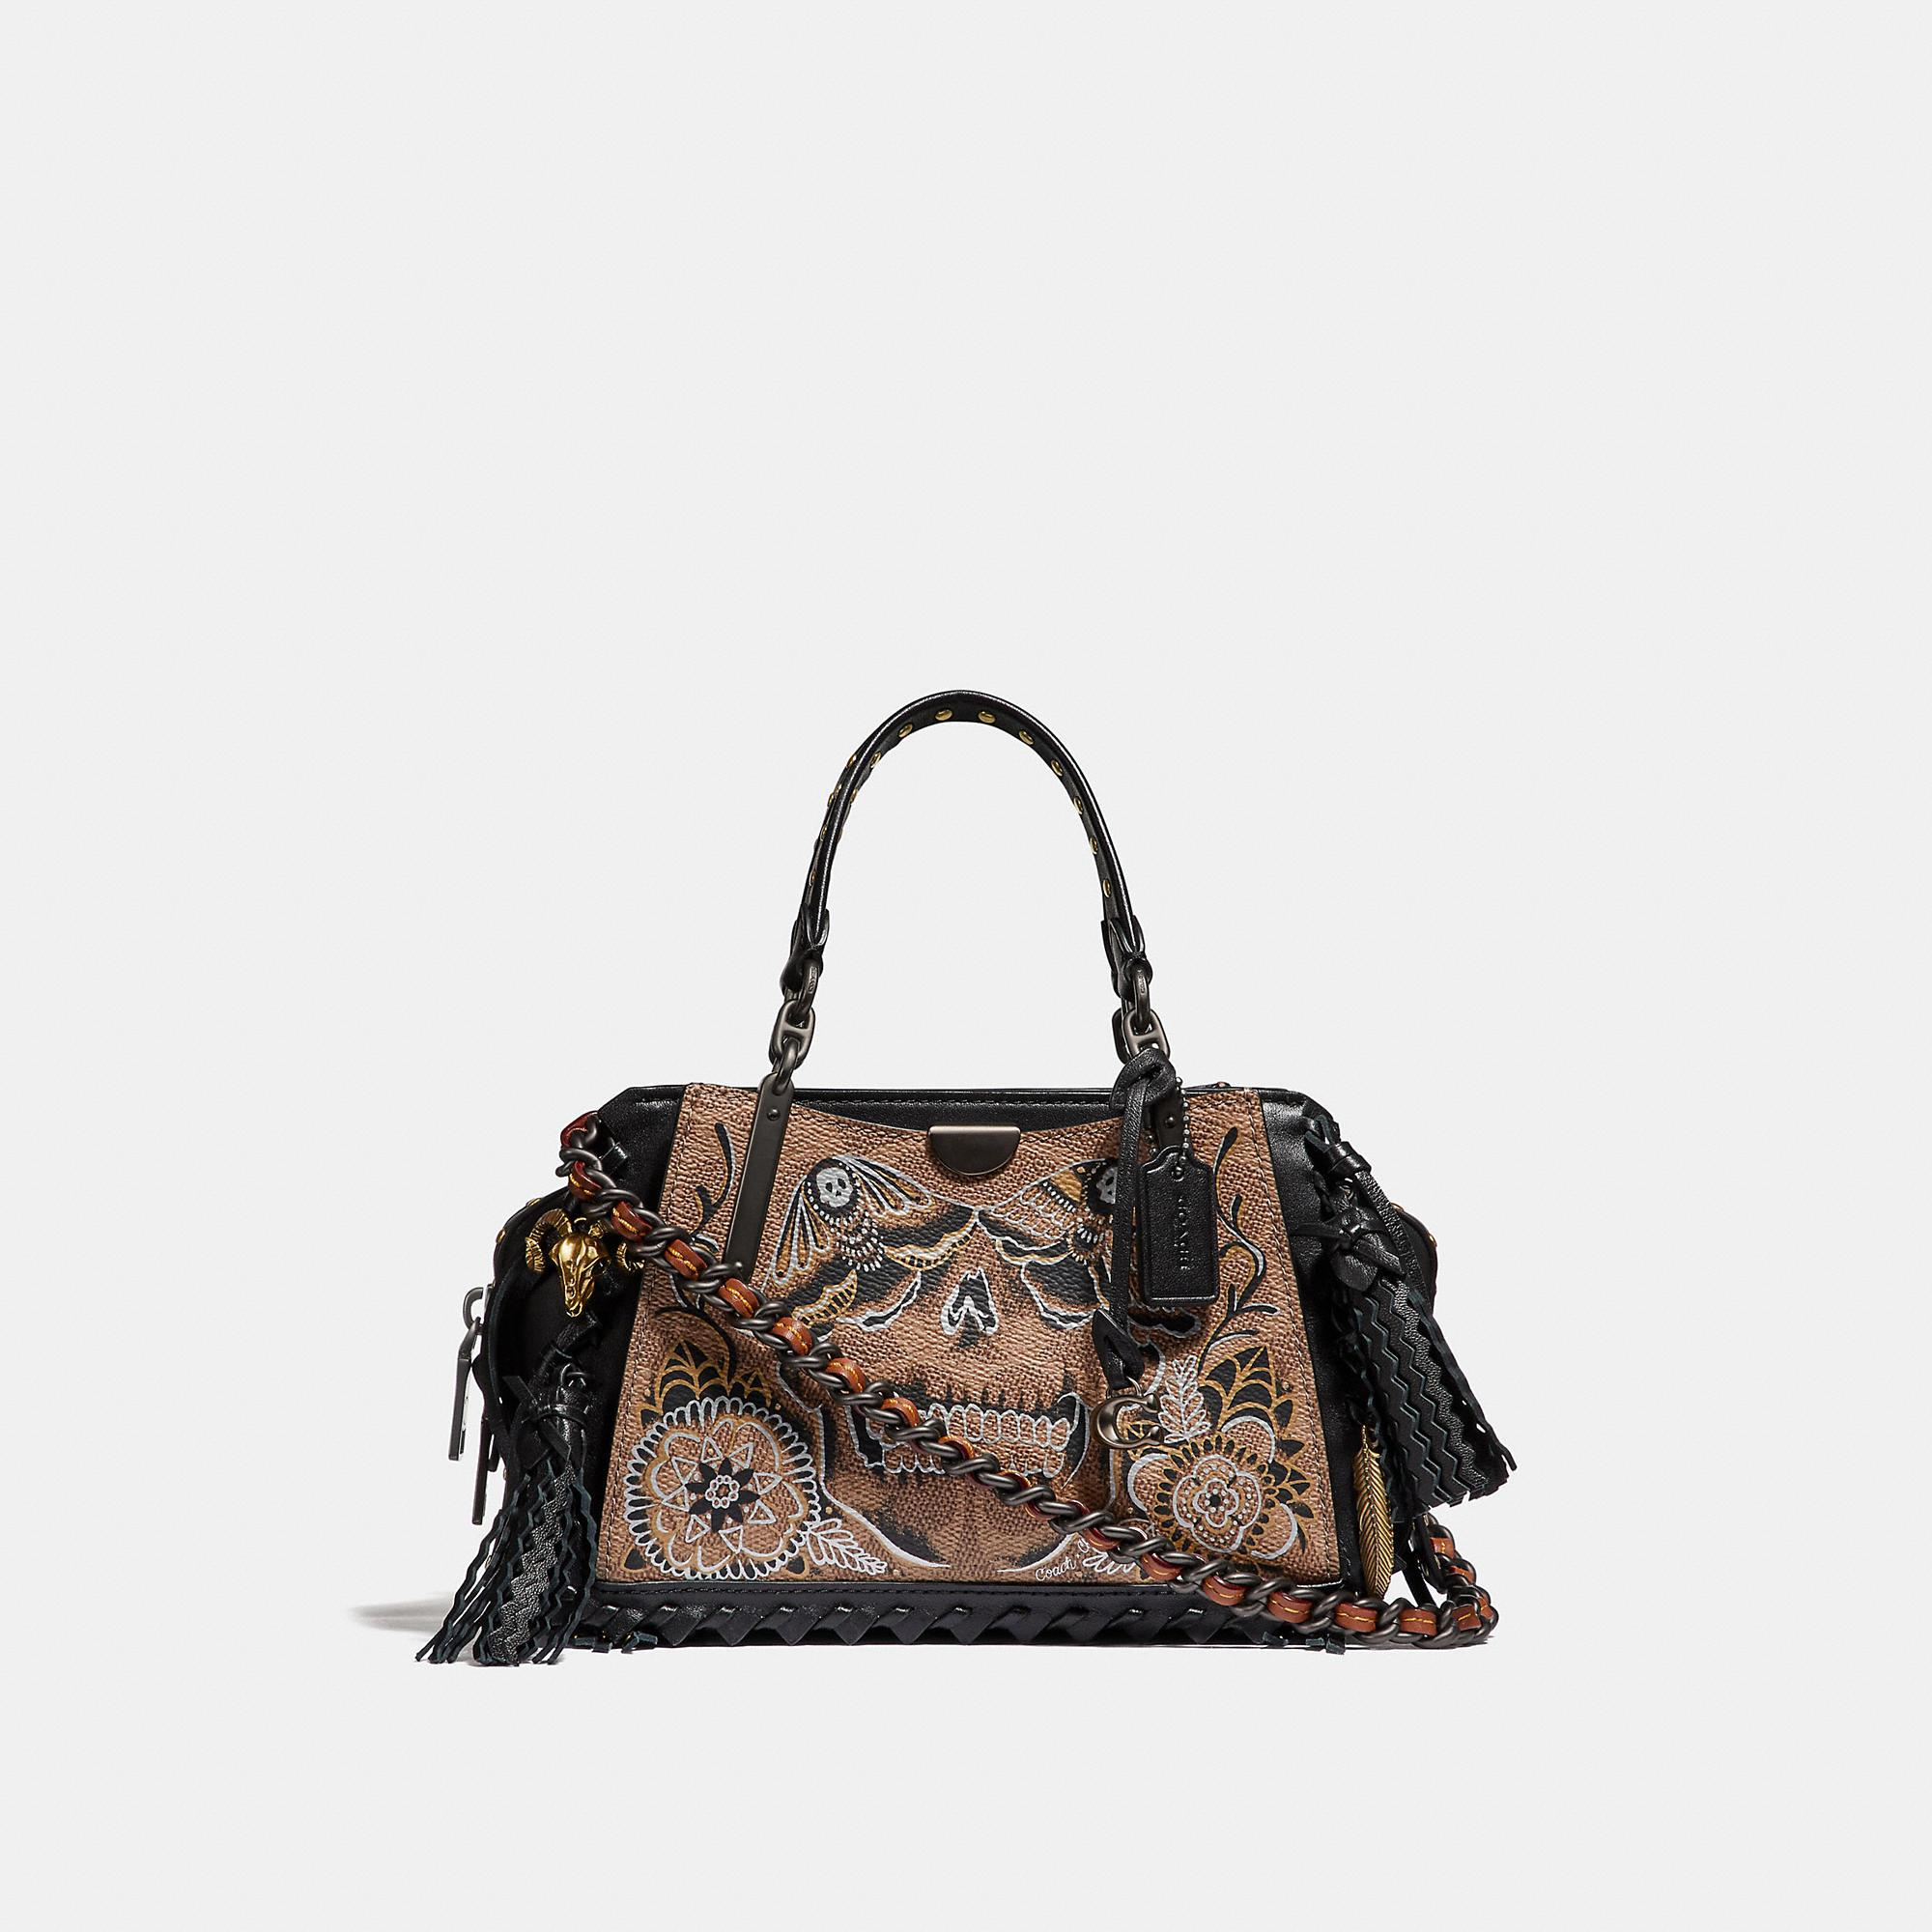 7fc852124d Coach Dreamer 21 In Signature Canvas With Tattoo - Women's in Tan  Black/Black Copper